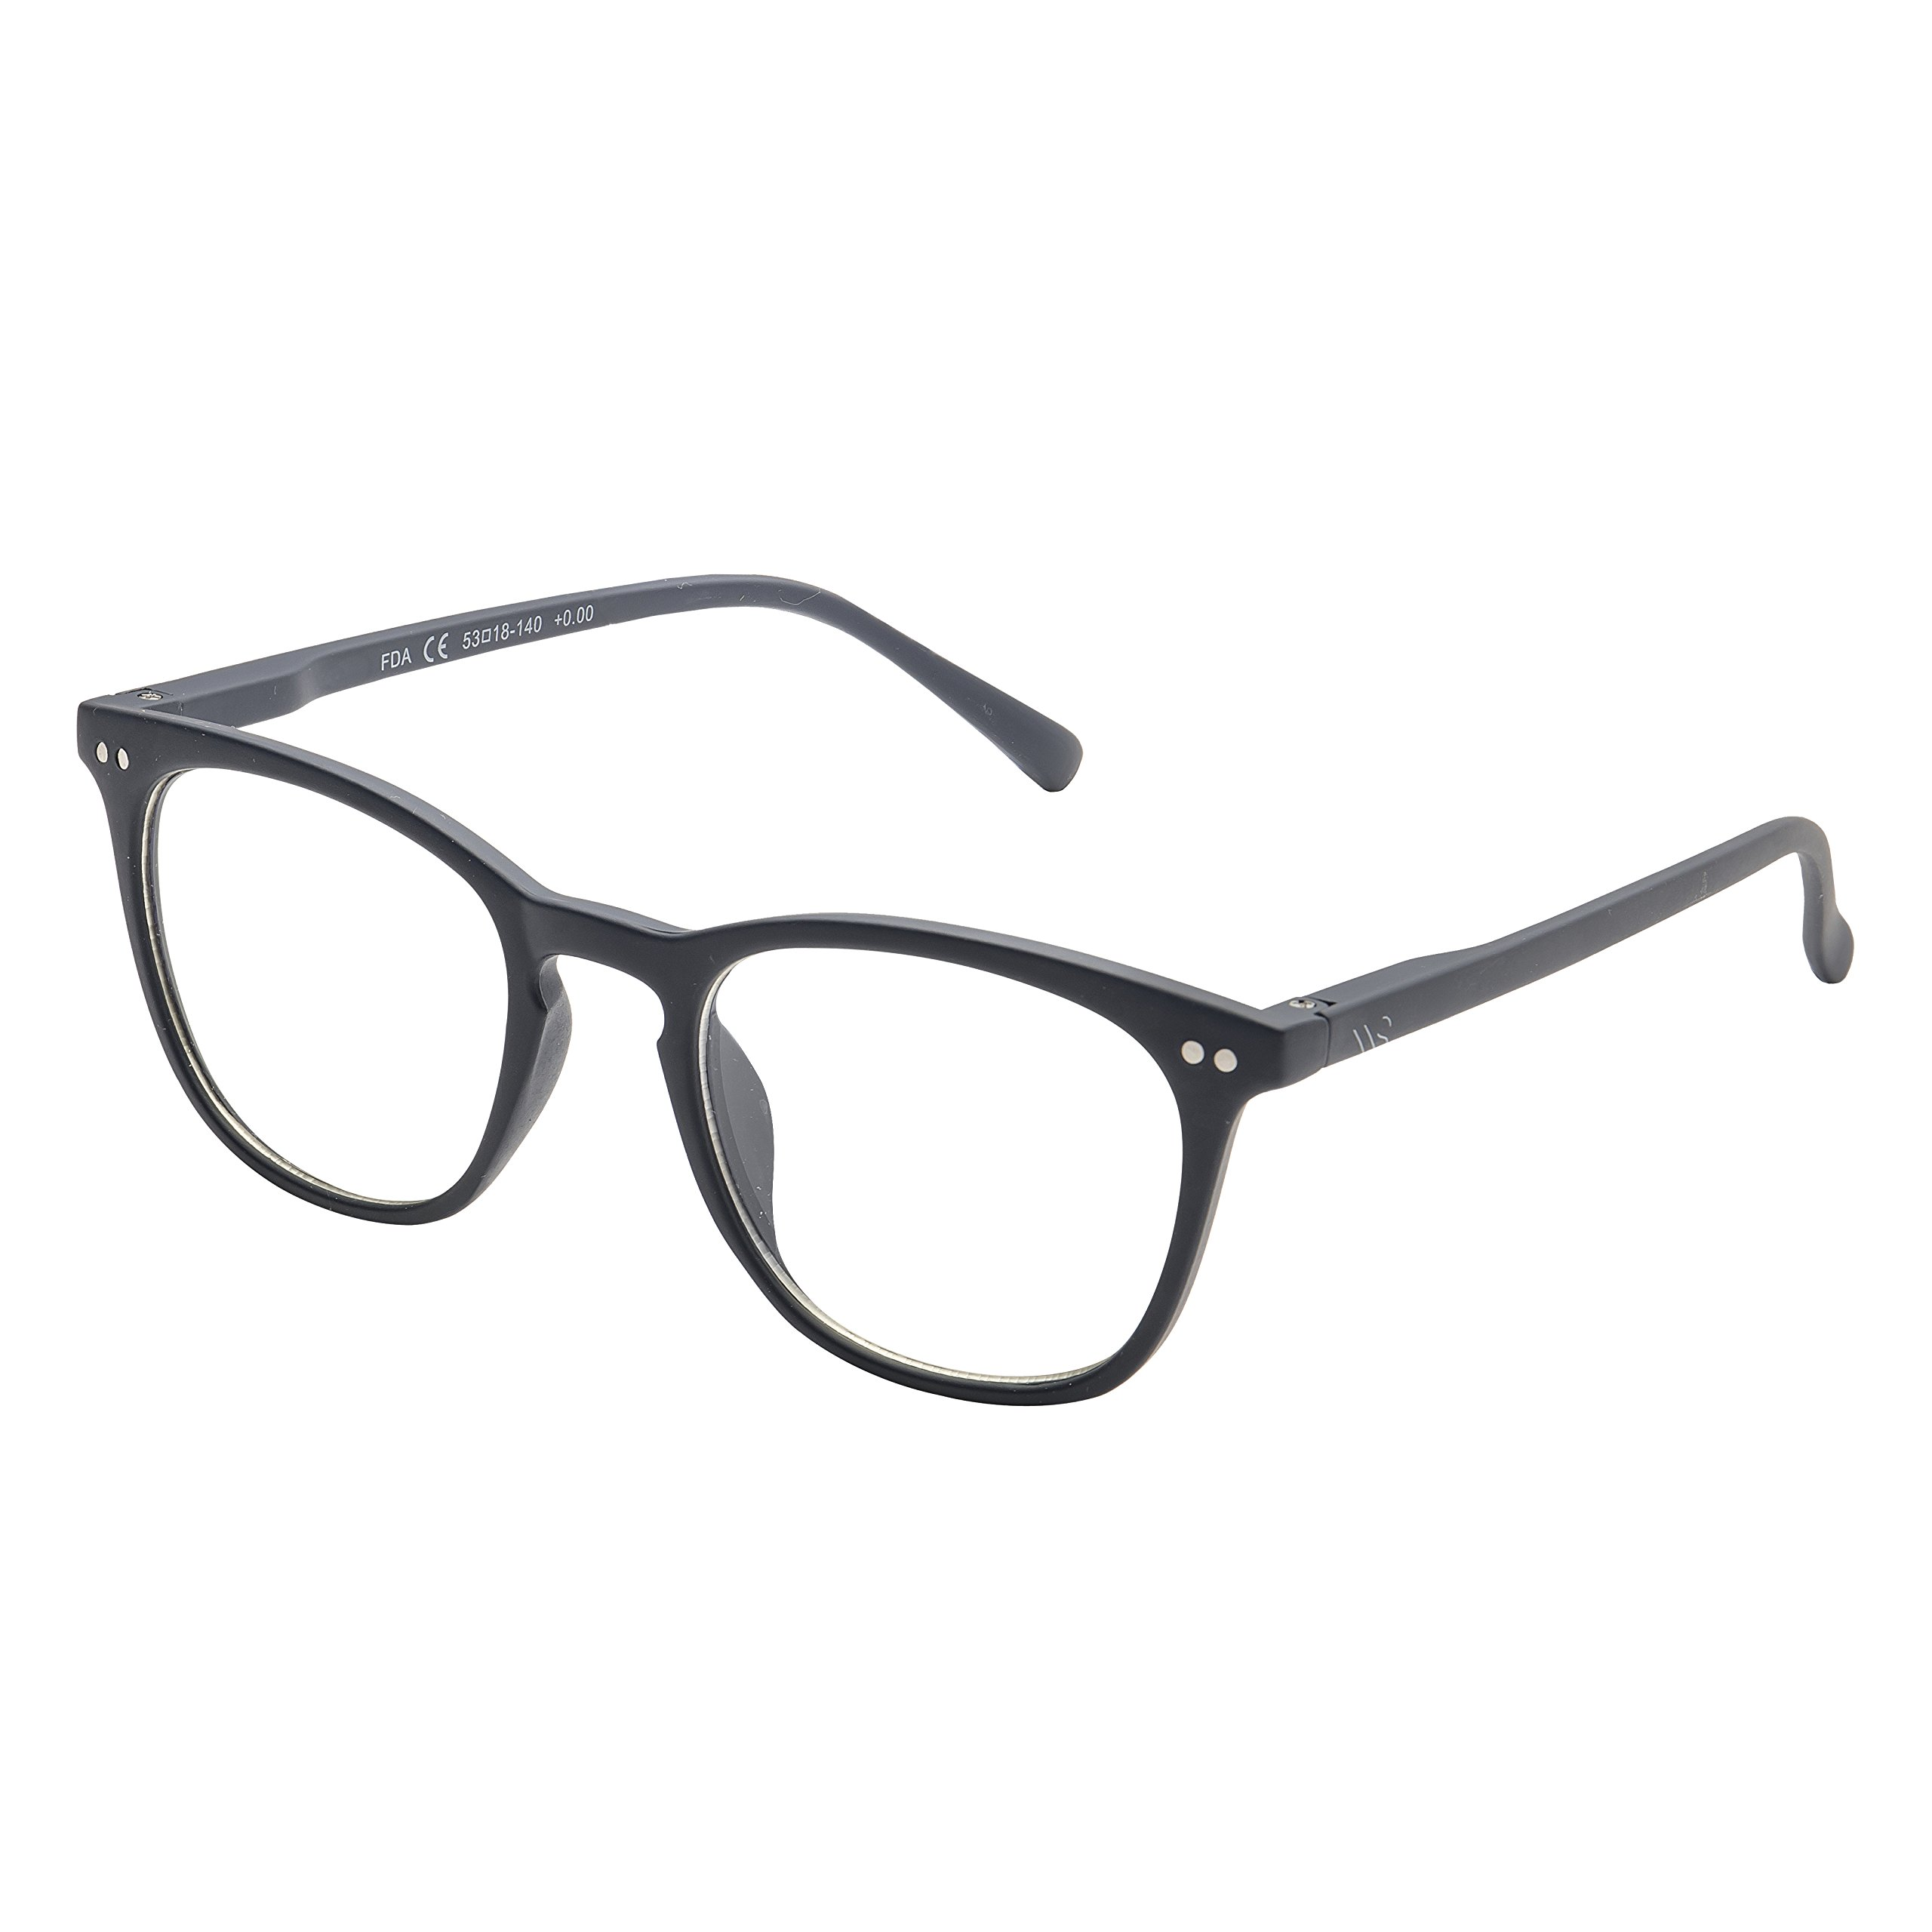 Blue Light Blocking Glasses with Anti-Glare,Cut UV400 Transparent Lens,Computer Reading Glasses,Anti Eyestrain/Anti Scratch/Anti Smudgy,Sleep Better for Women/Men (Navy Blue | No Magnification)